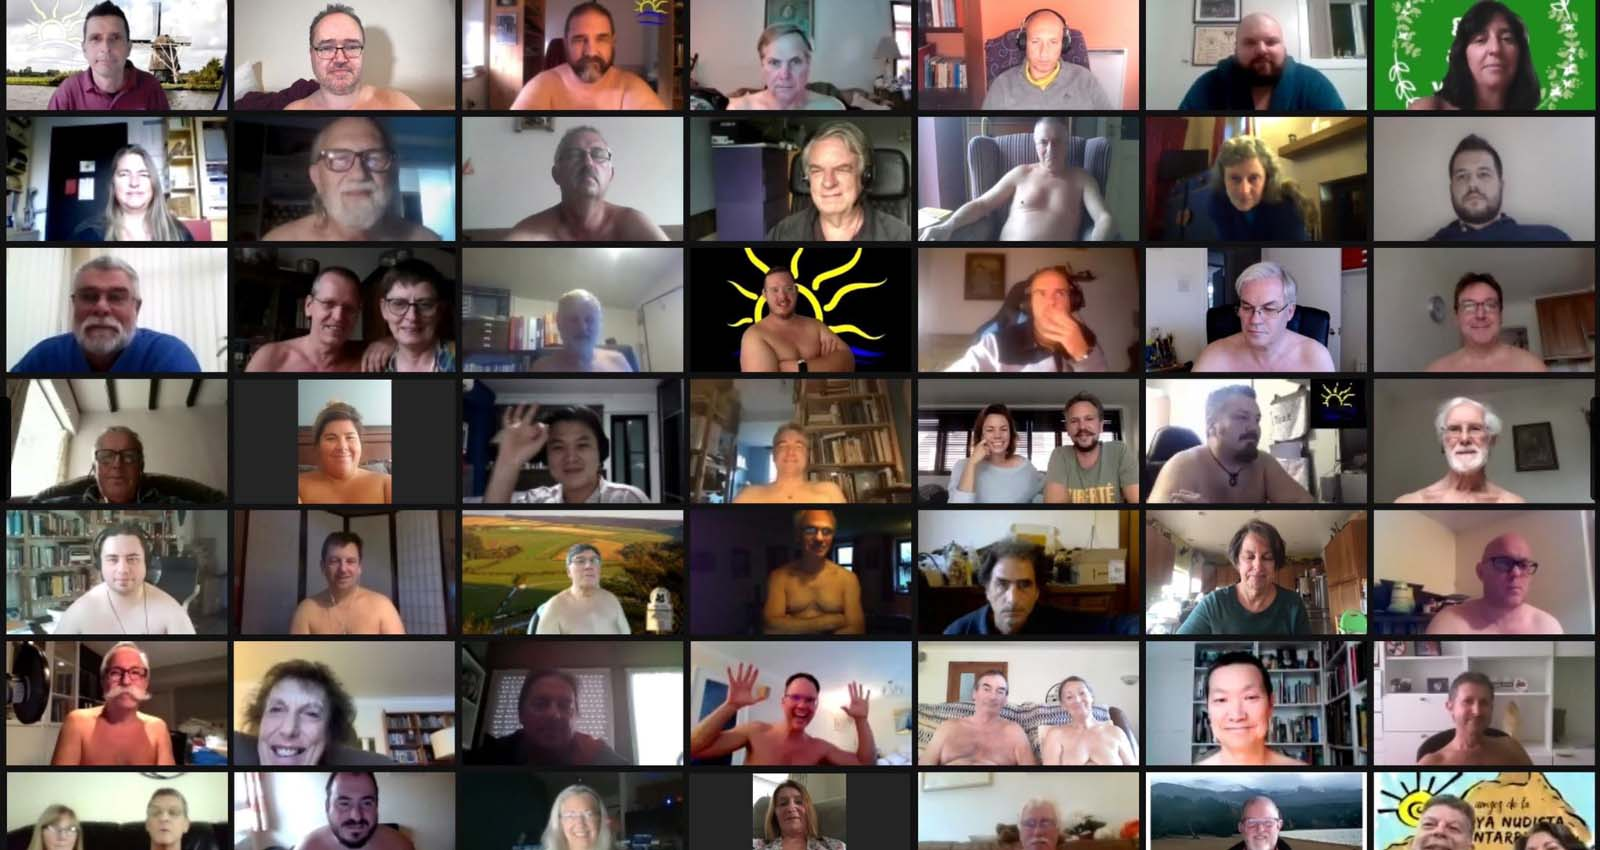 The Global Naturist Forum and the Future of Social Nudity